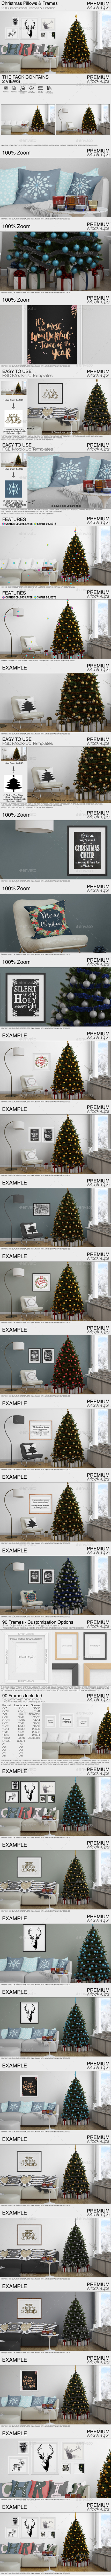 GraphicRiver Christmas Pillows & Frames Pack 20990822